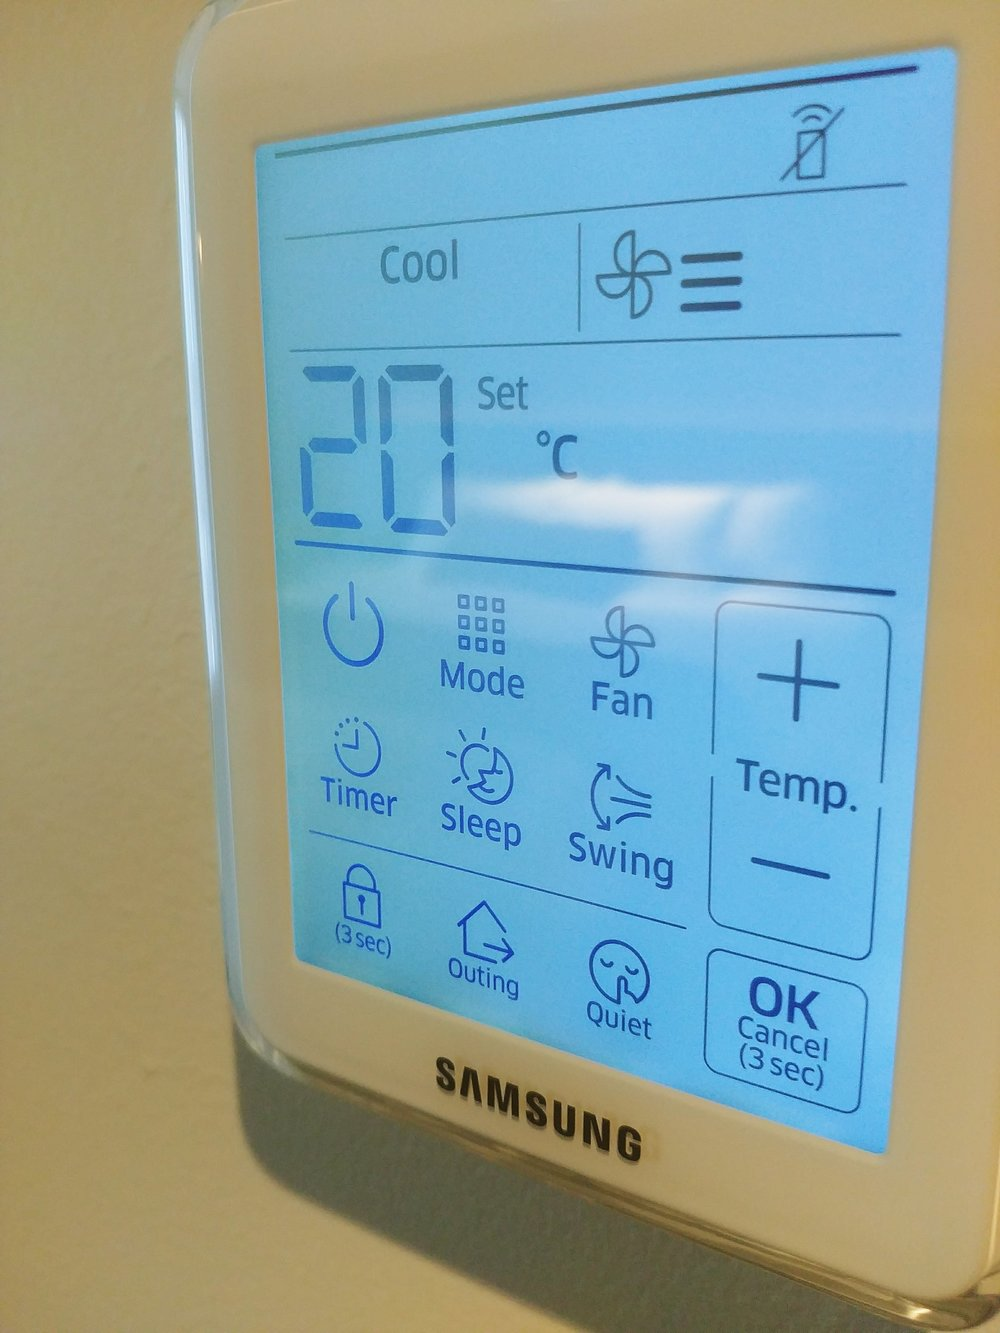 Love the touch screen capability for the in-room air conditioning system...very cool!